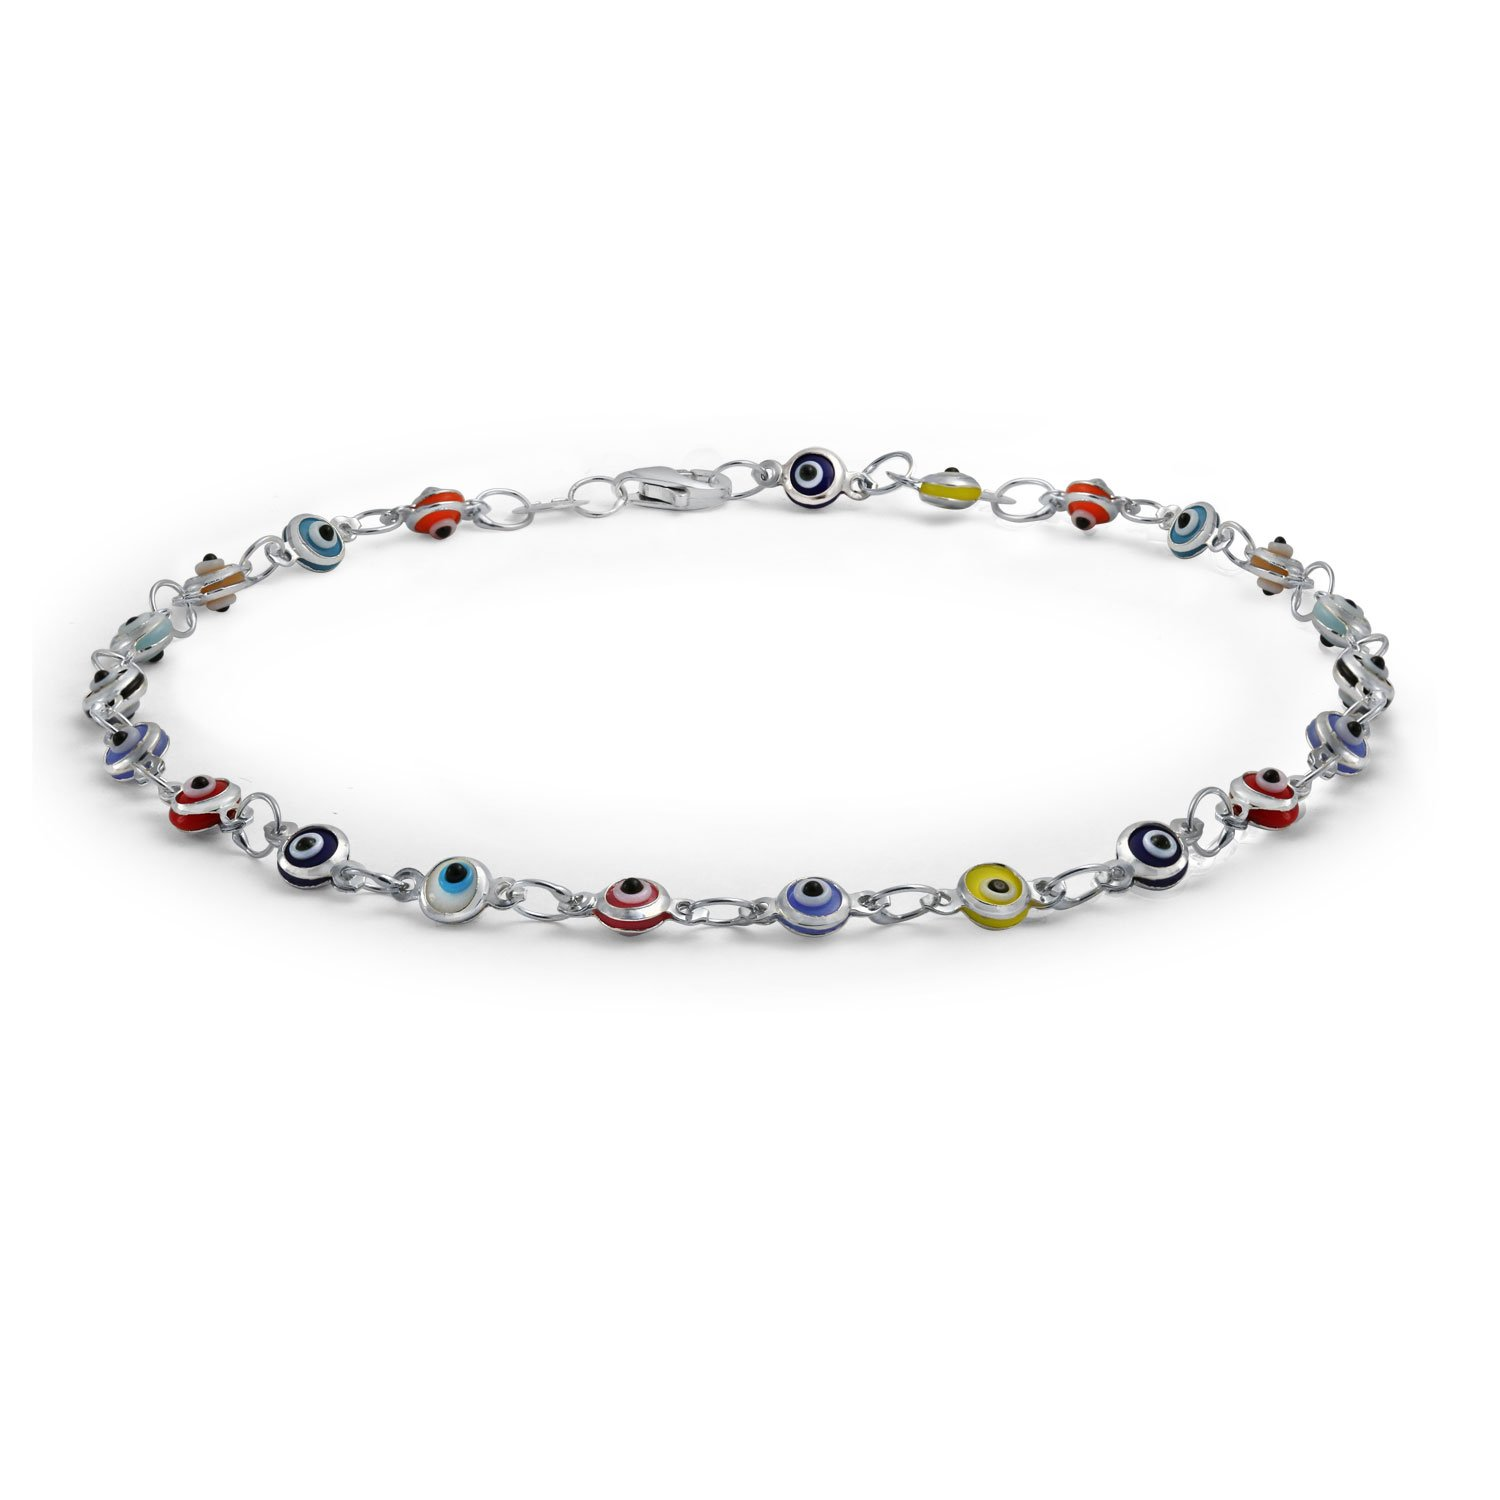 Bling Jewelry Multi Color Anklet Sterling Silver Evil Eye Ankle Bracelet 10in IY-6121-A-S